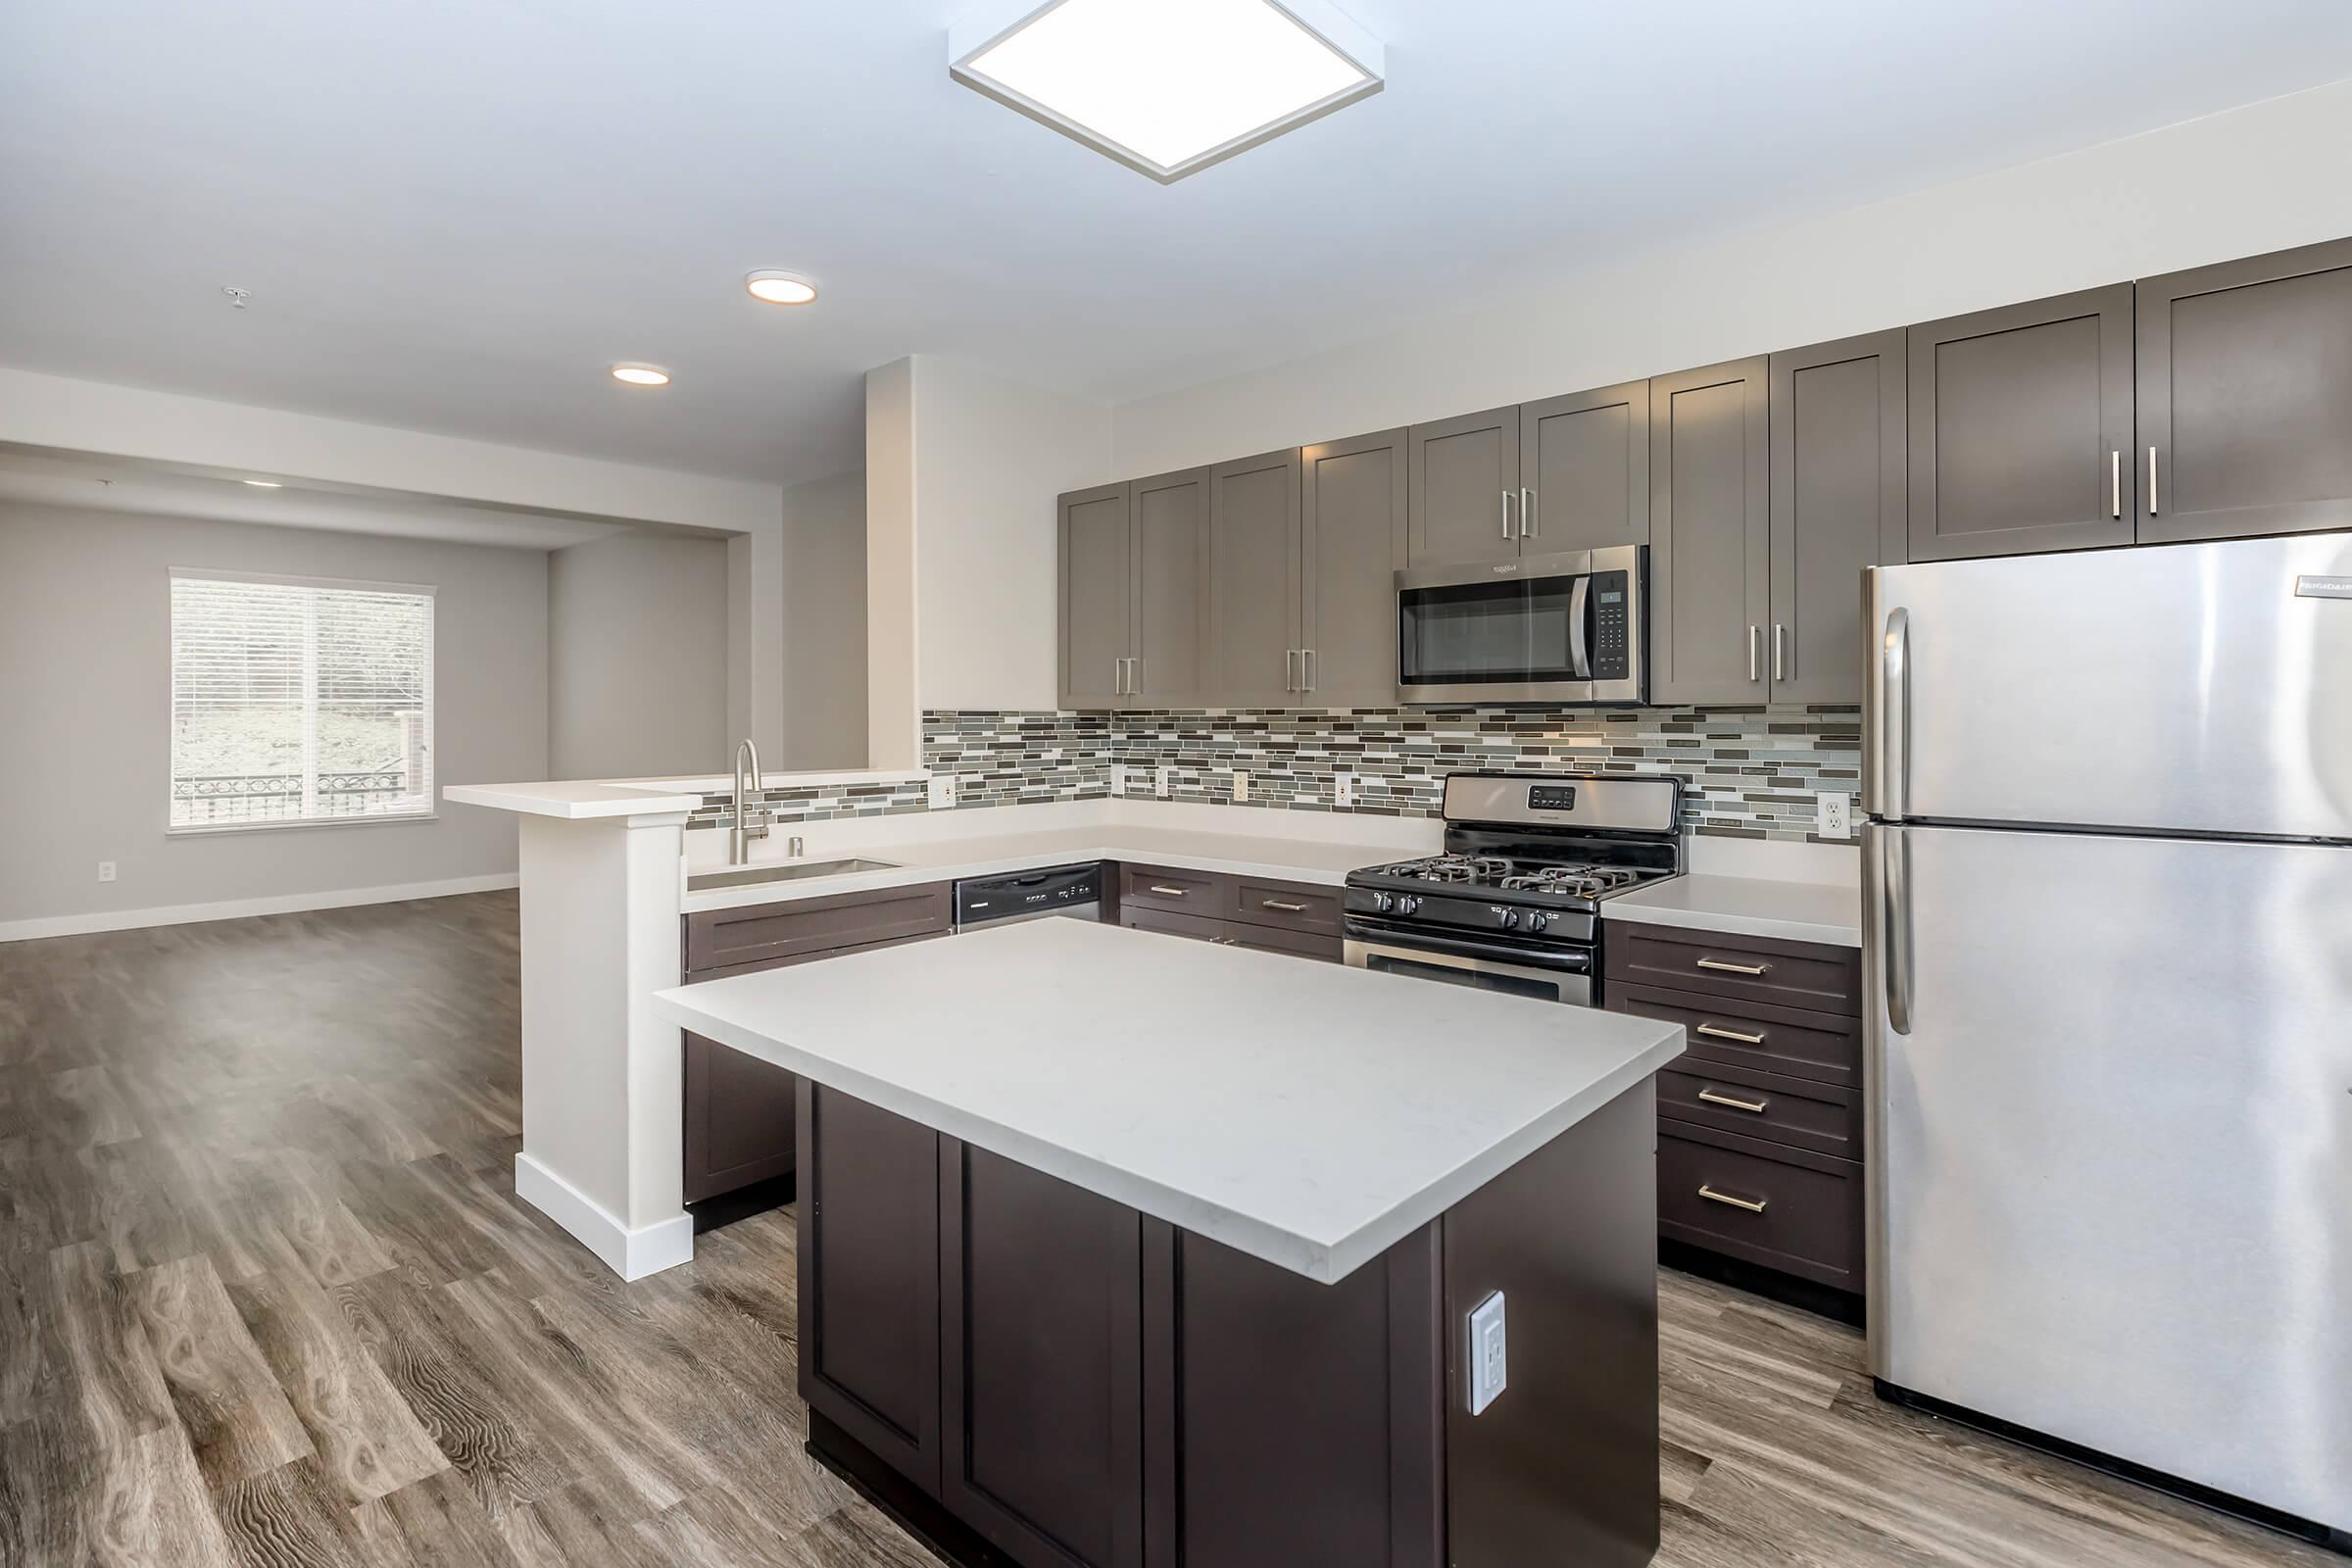 Unfurnished kitchen with an island